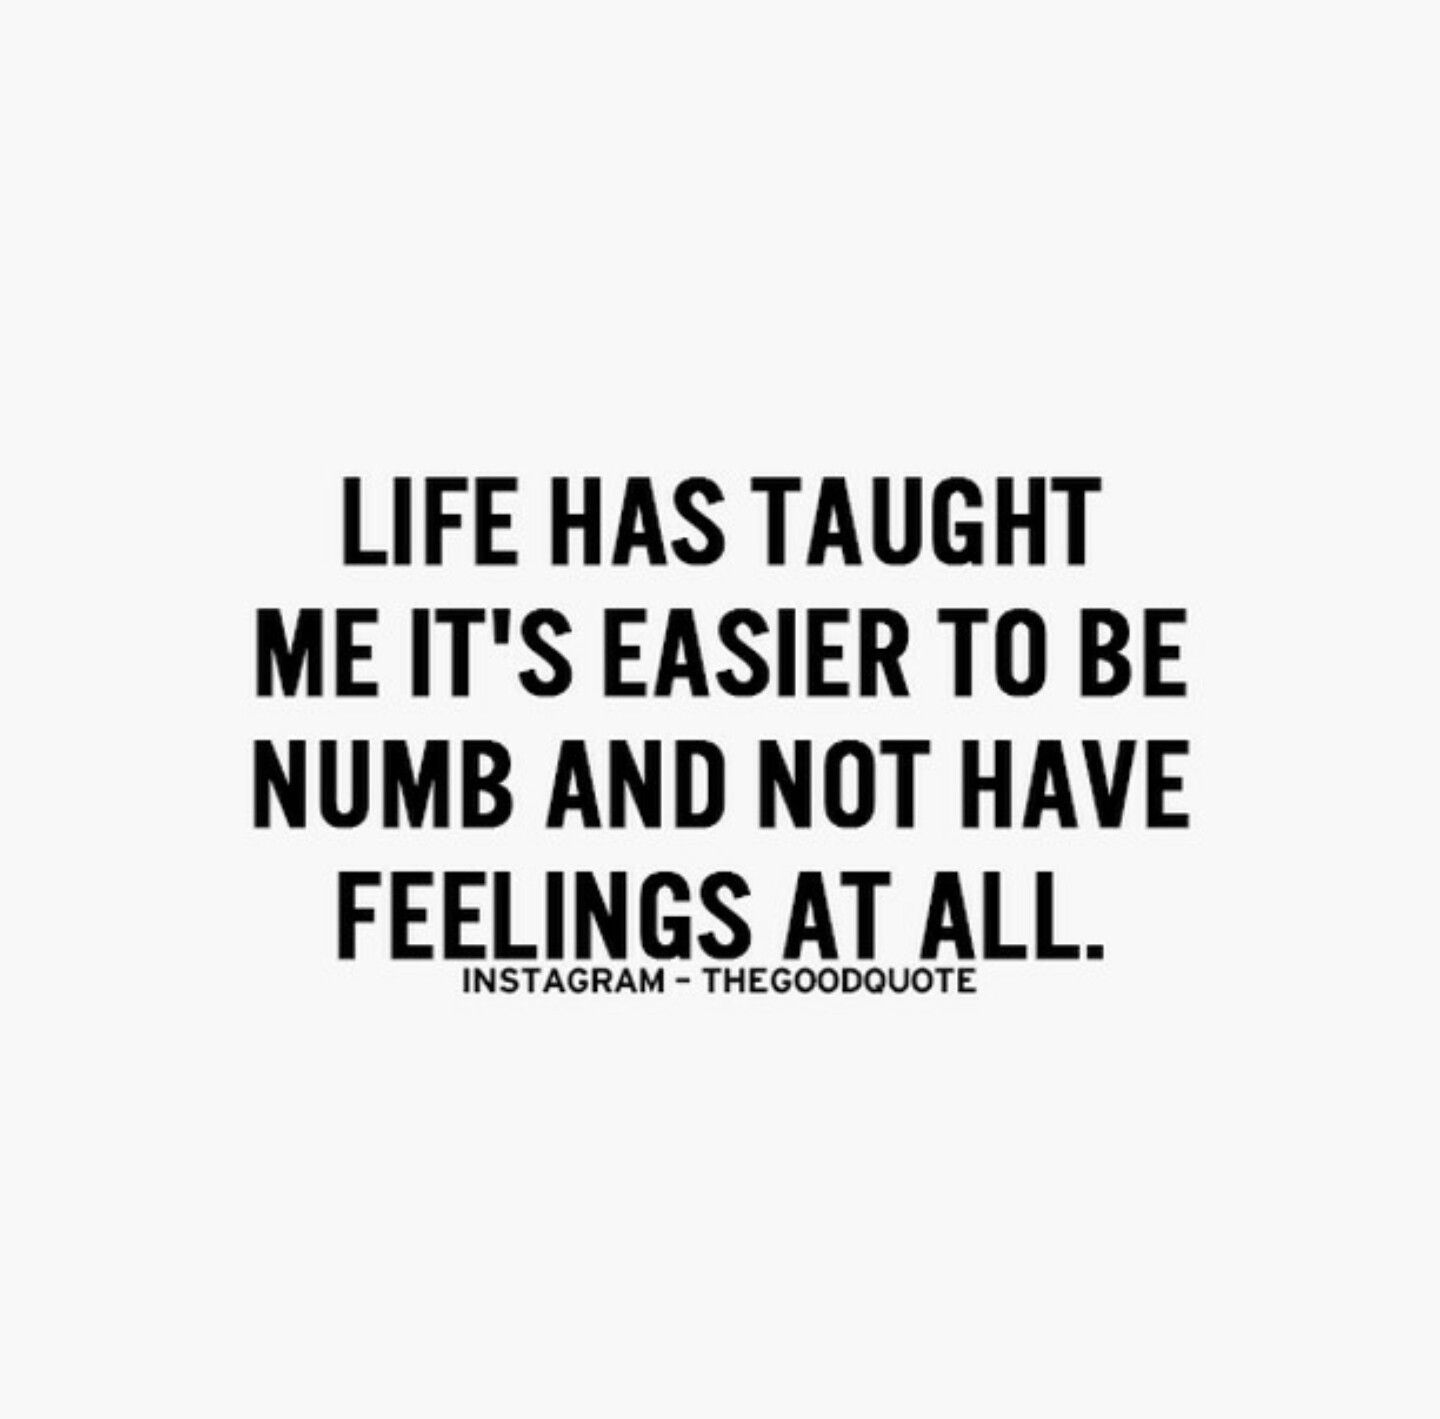 What Life Has Taught Me Quotes Life Has Taught Me It's Easier To Be Numb And Not Have Feelings At